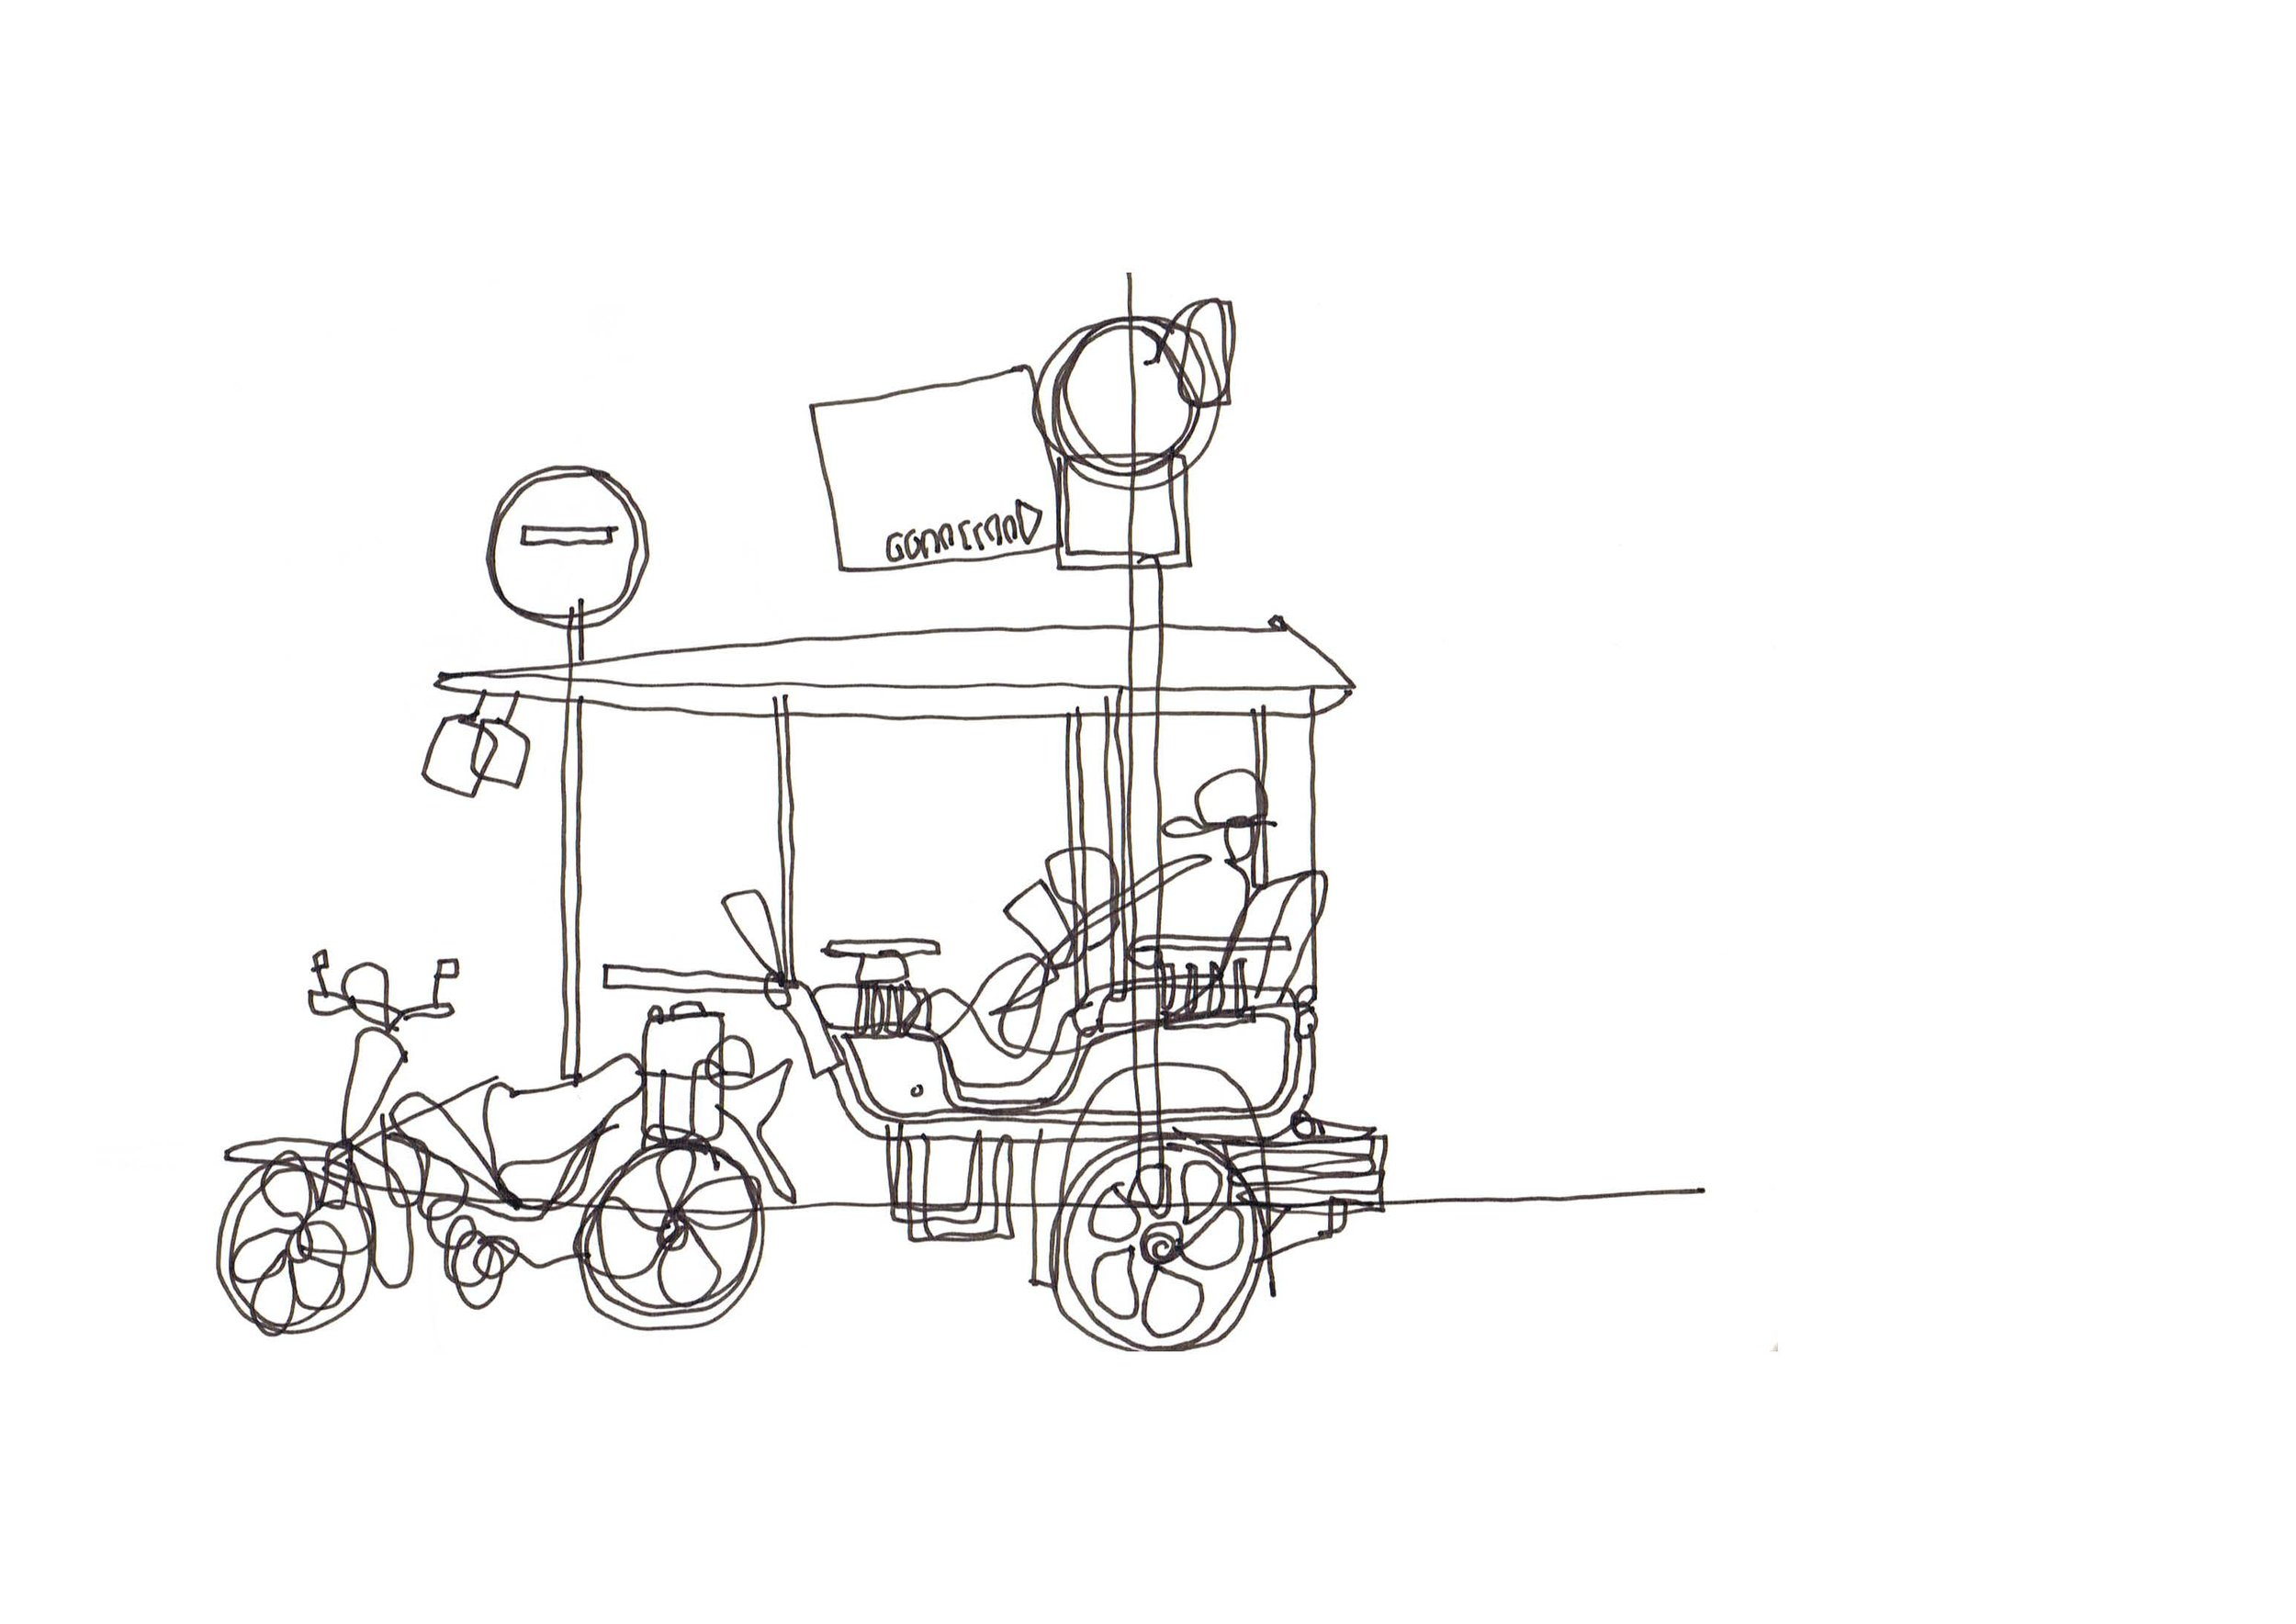 cambodia sketches 2015_Page_18.jpg